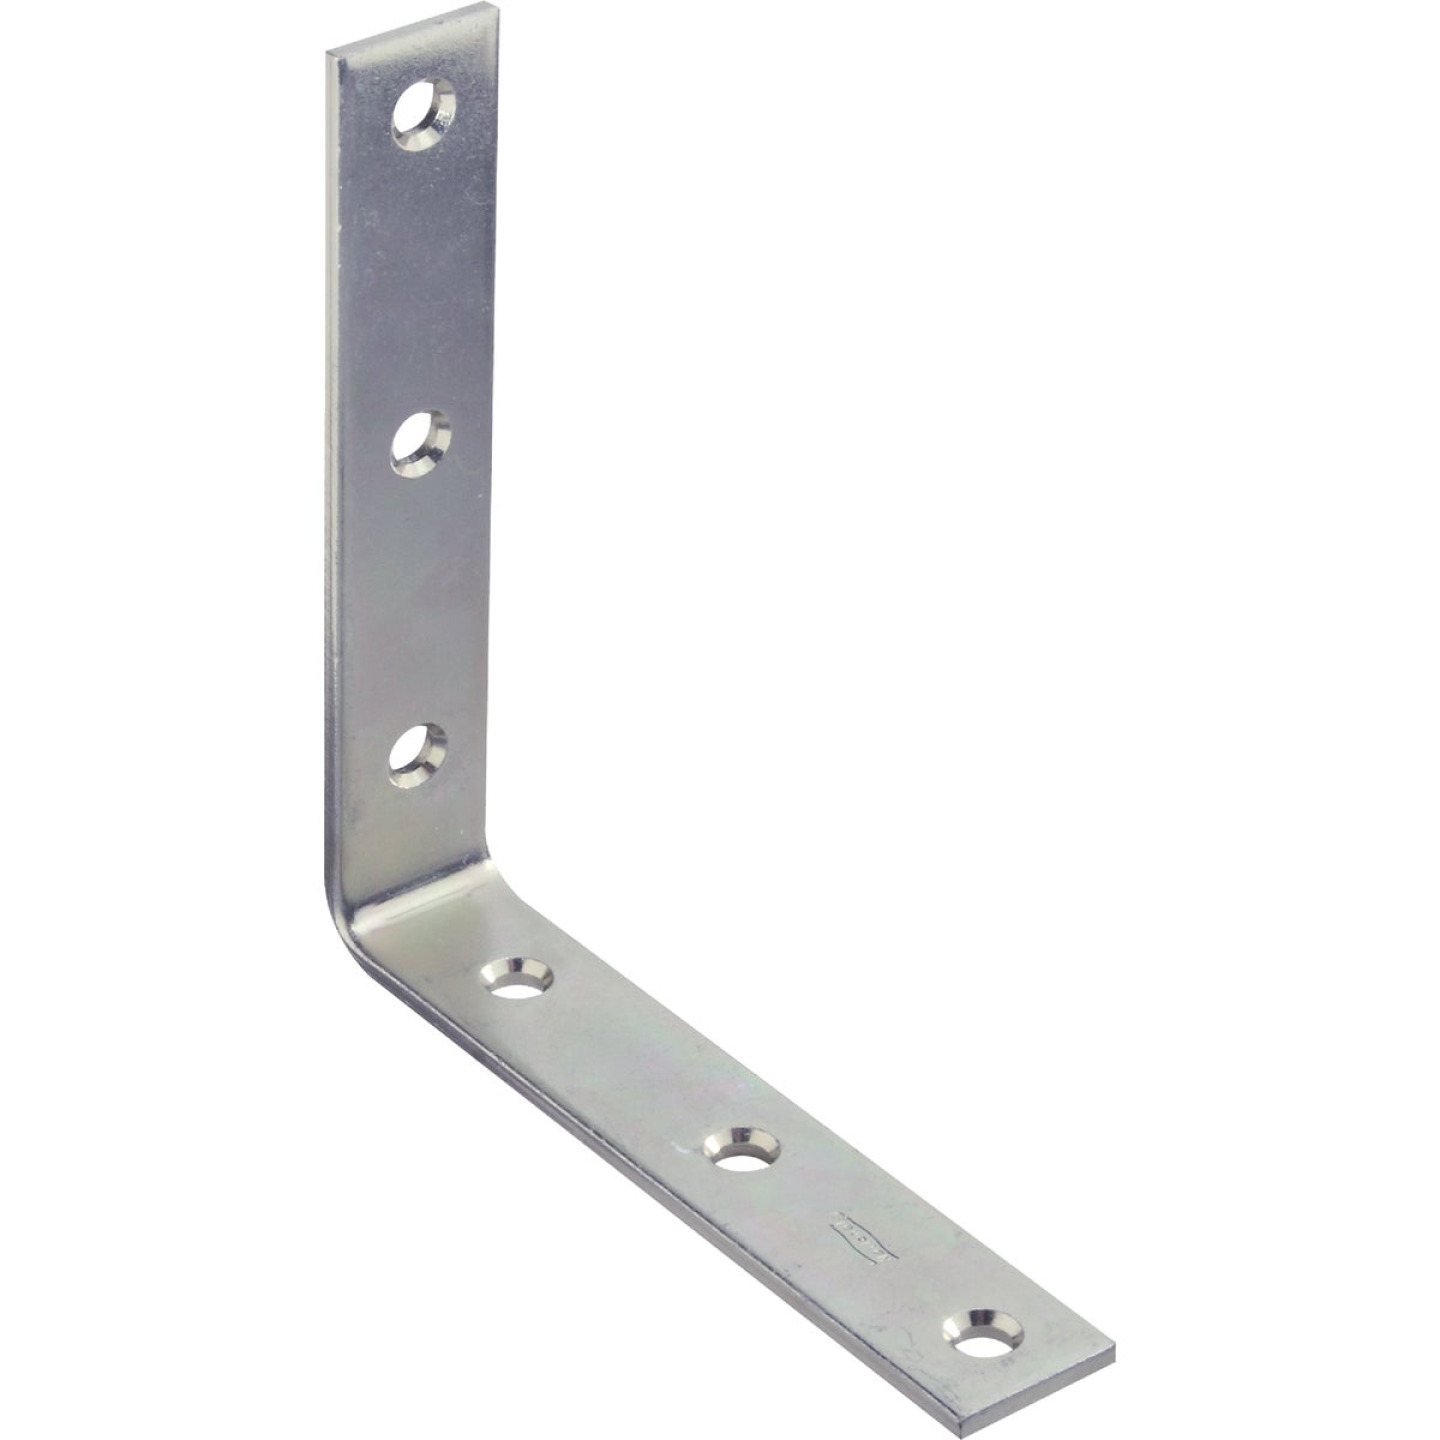 National Catalog 115 6 In. x 1-1/8 In. Zinc Corner Brace Image 1